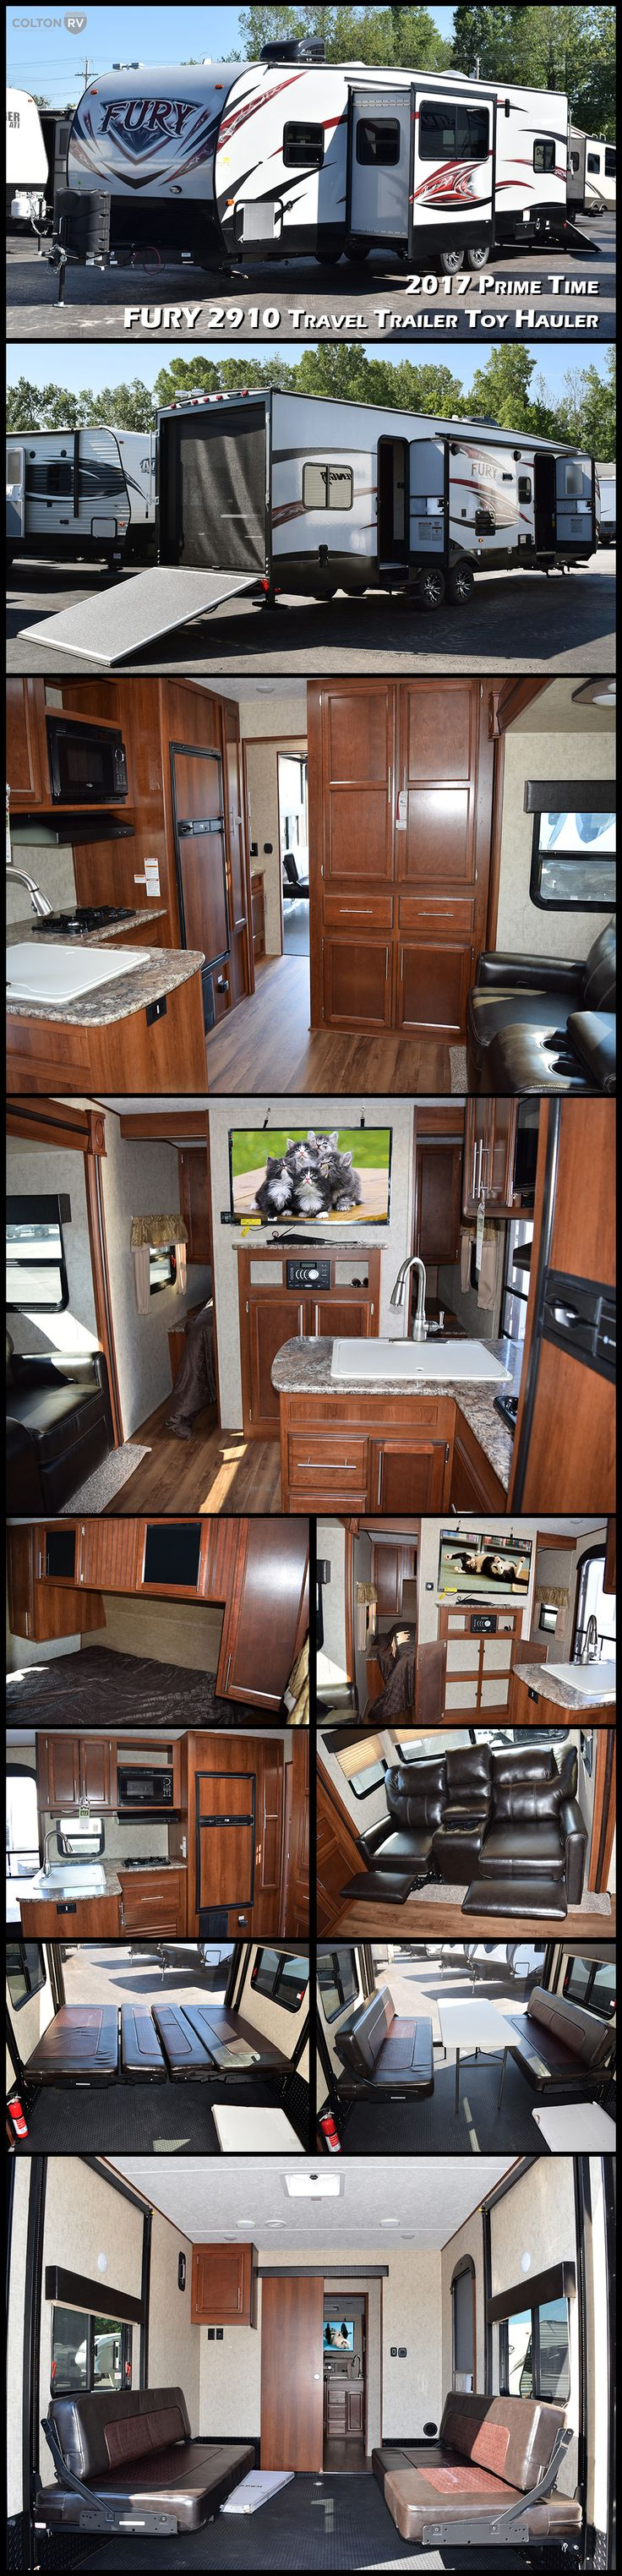 1000 ideas about toy hauler on pinterest keystone rv for Garage prime conversion